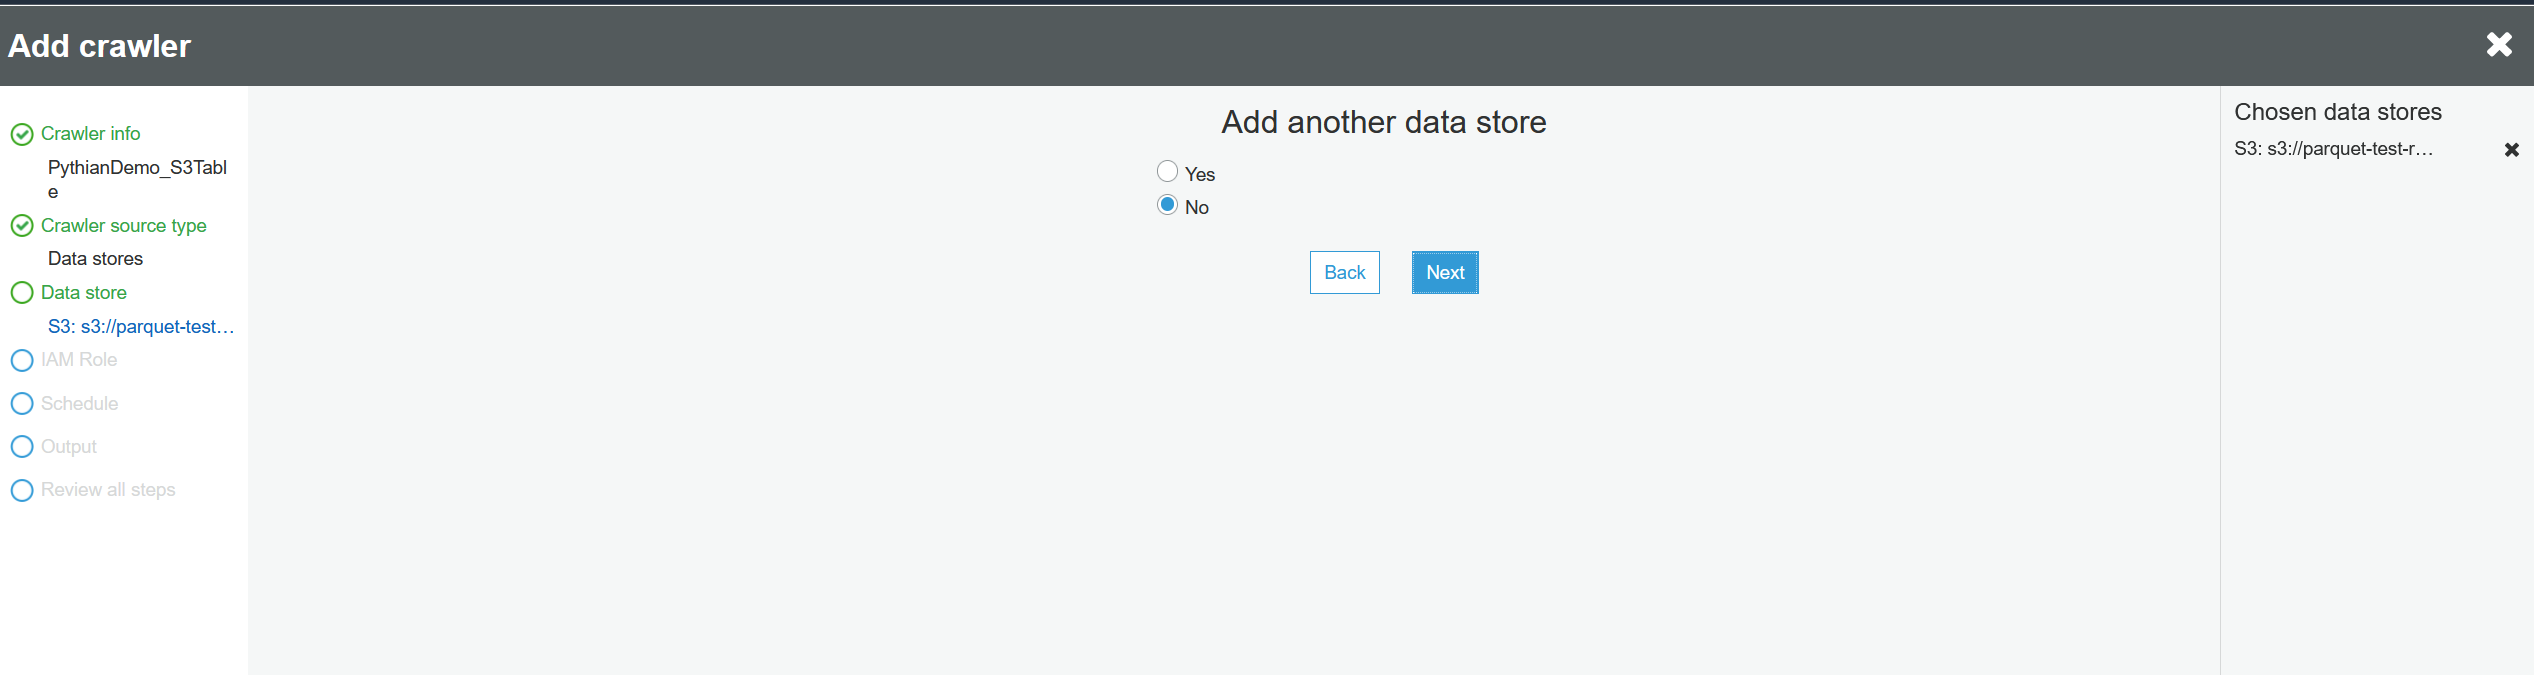 Add another data store.